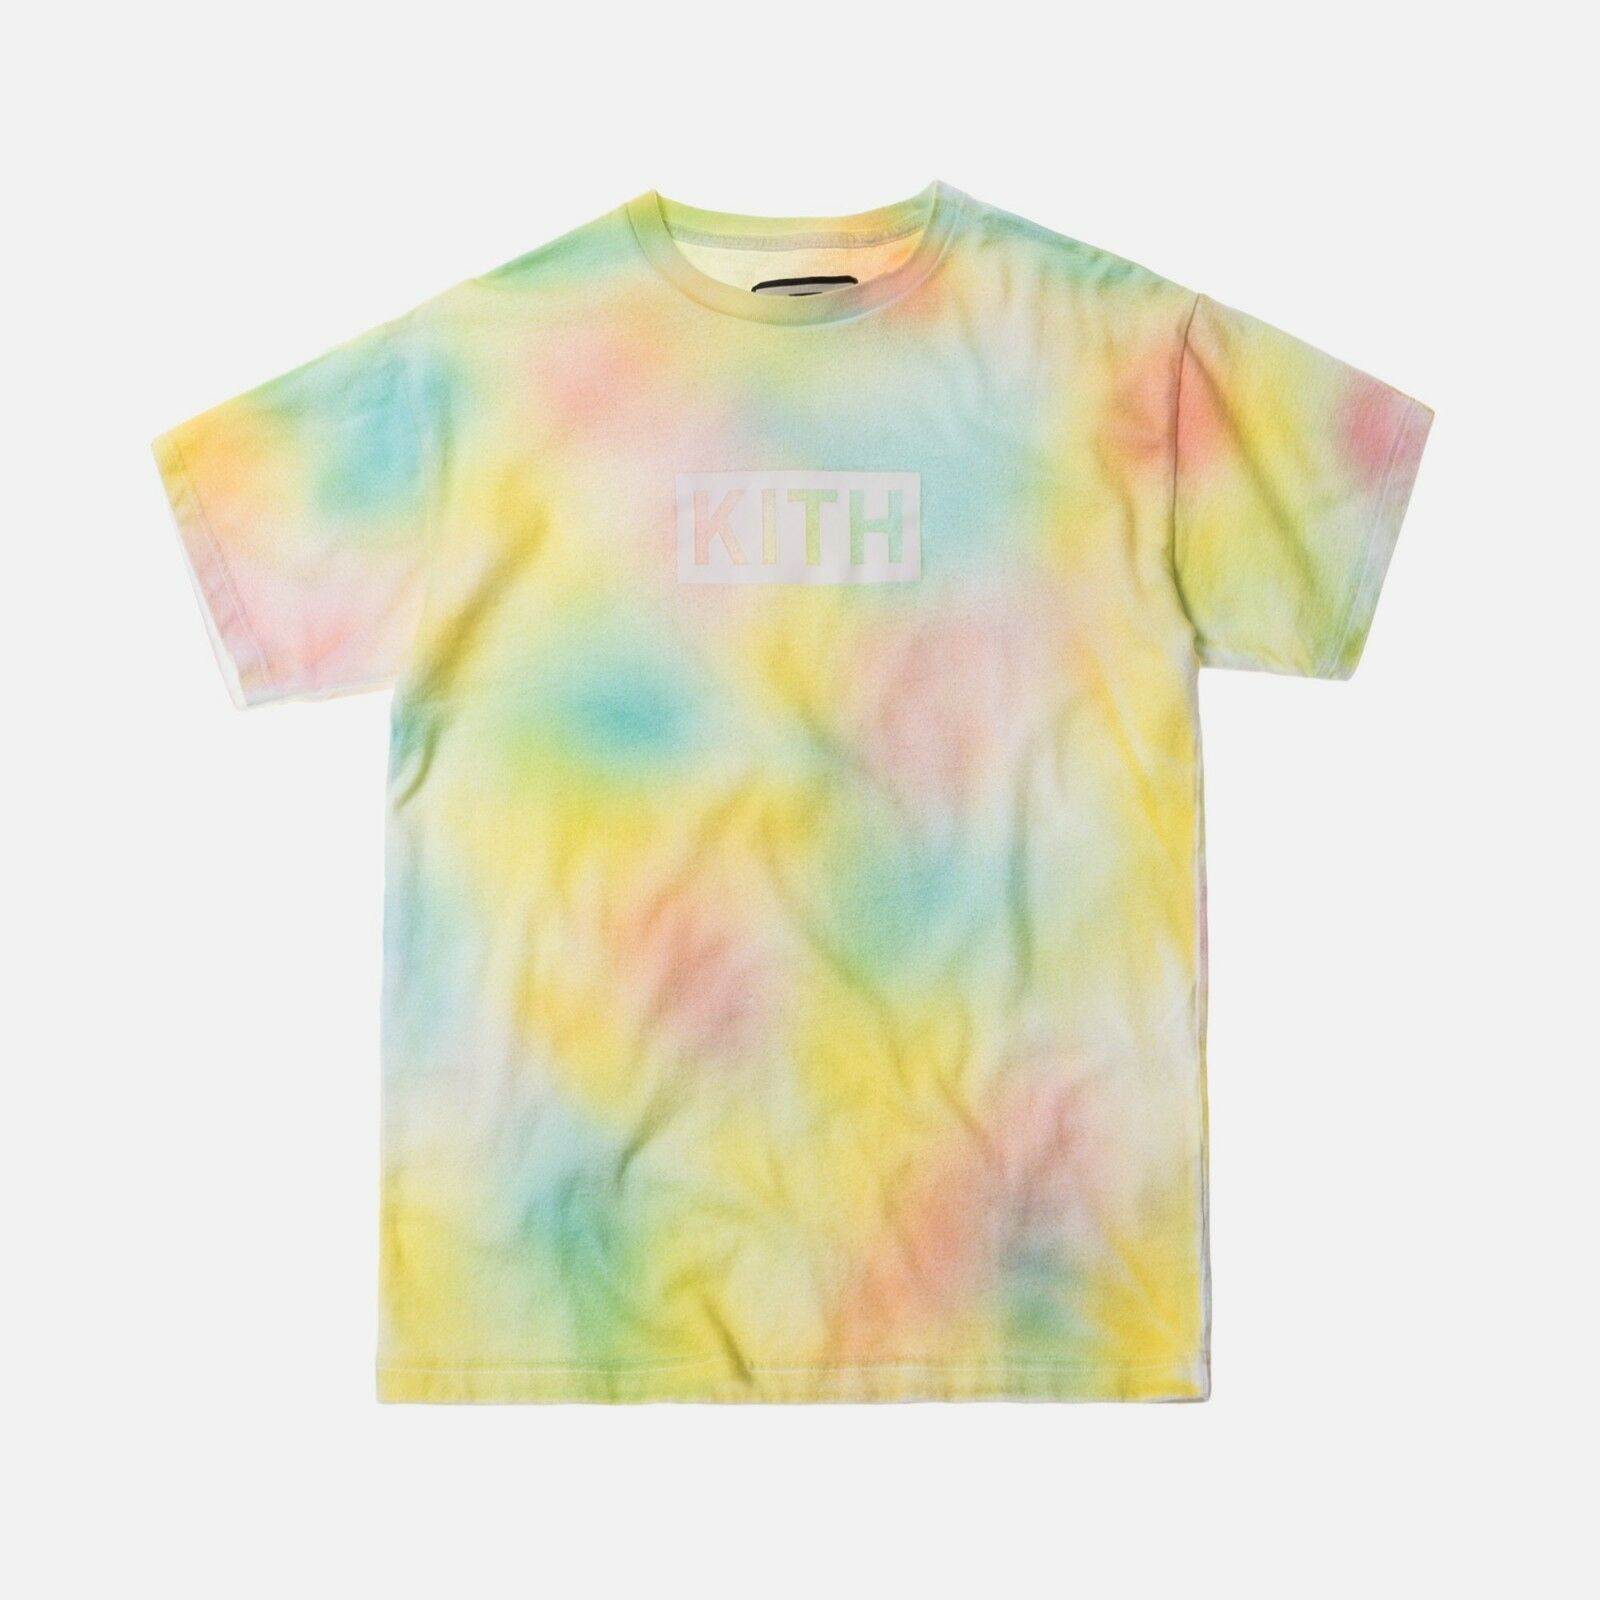 Kith Tie Dye Box Logo Tee Yellow Size L NEW 100% Authentic Limited